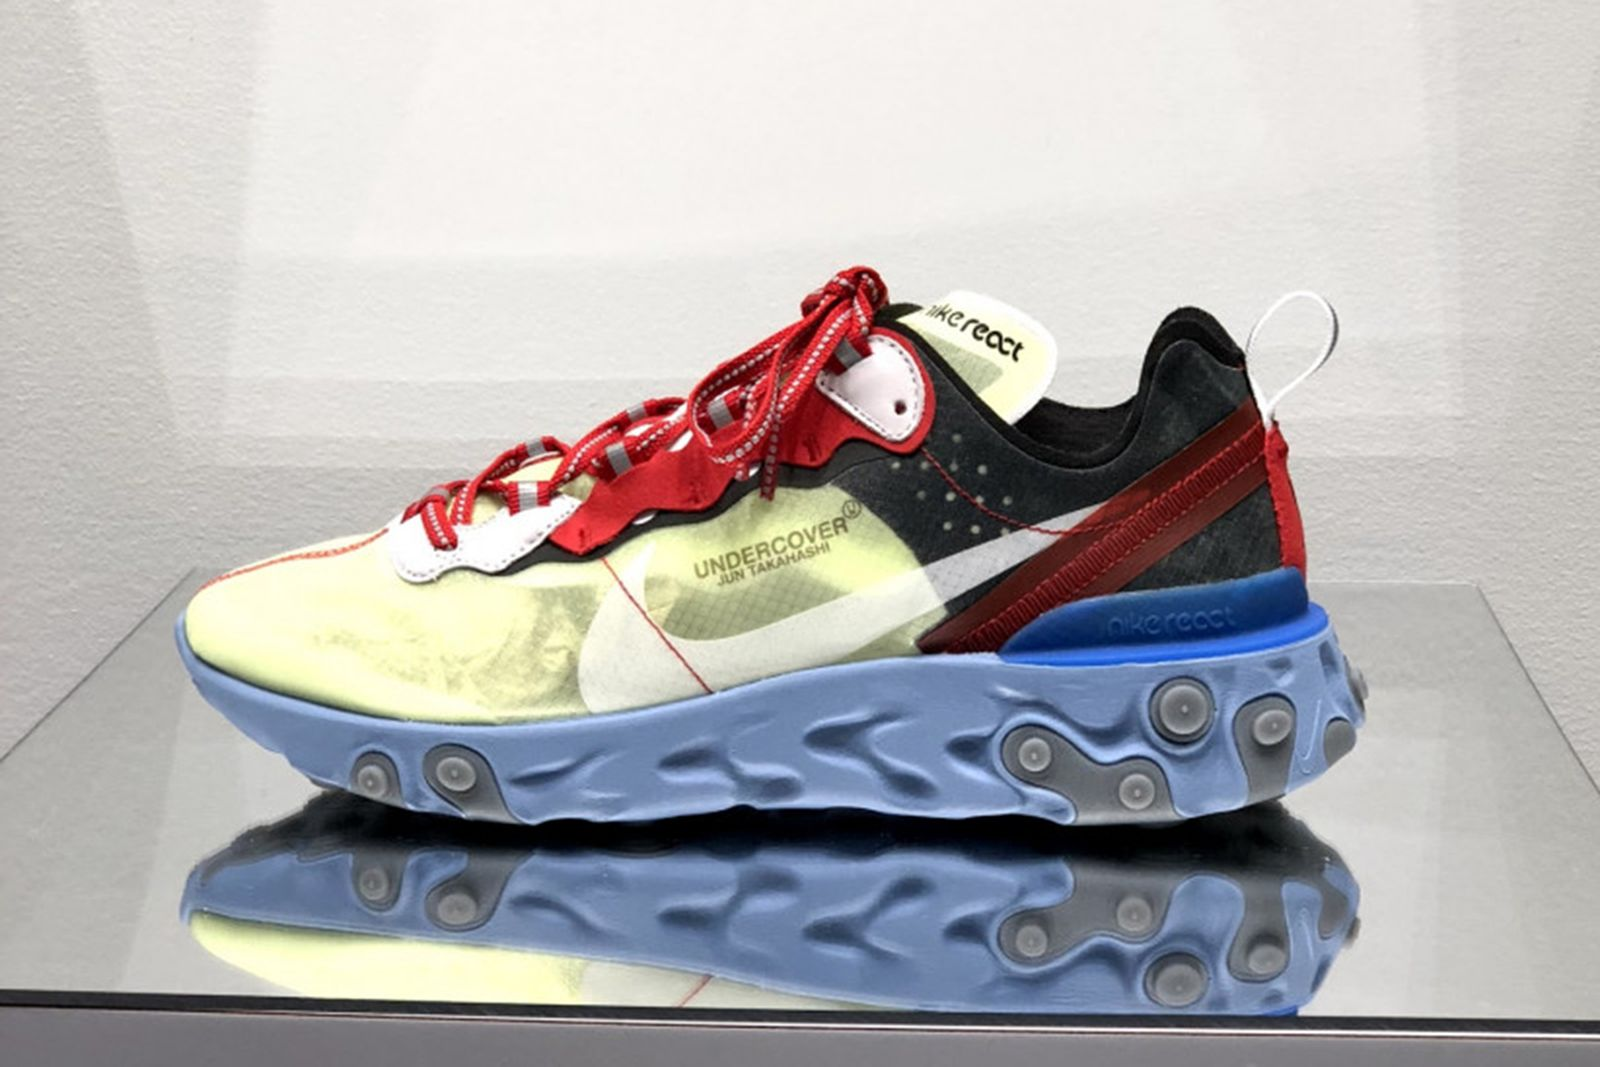 undercover nike react element 87 university red 01 900x1200